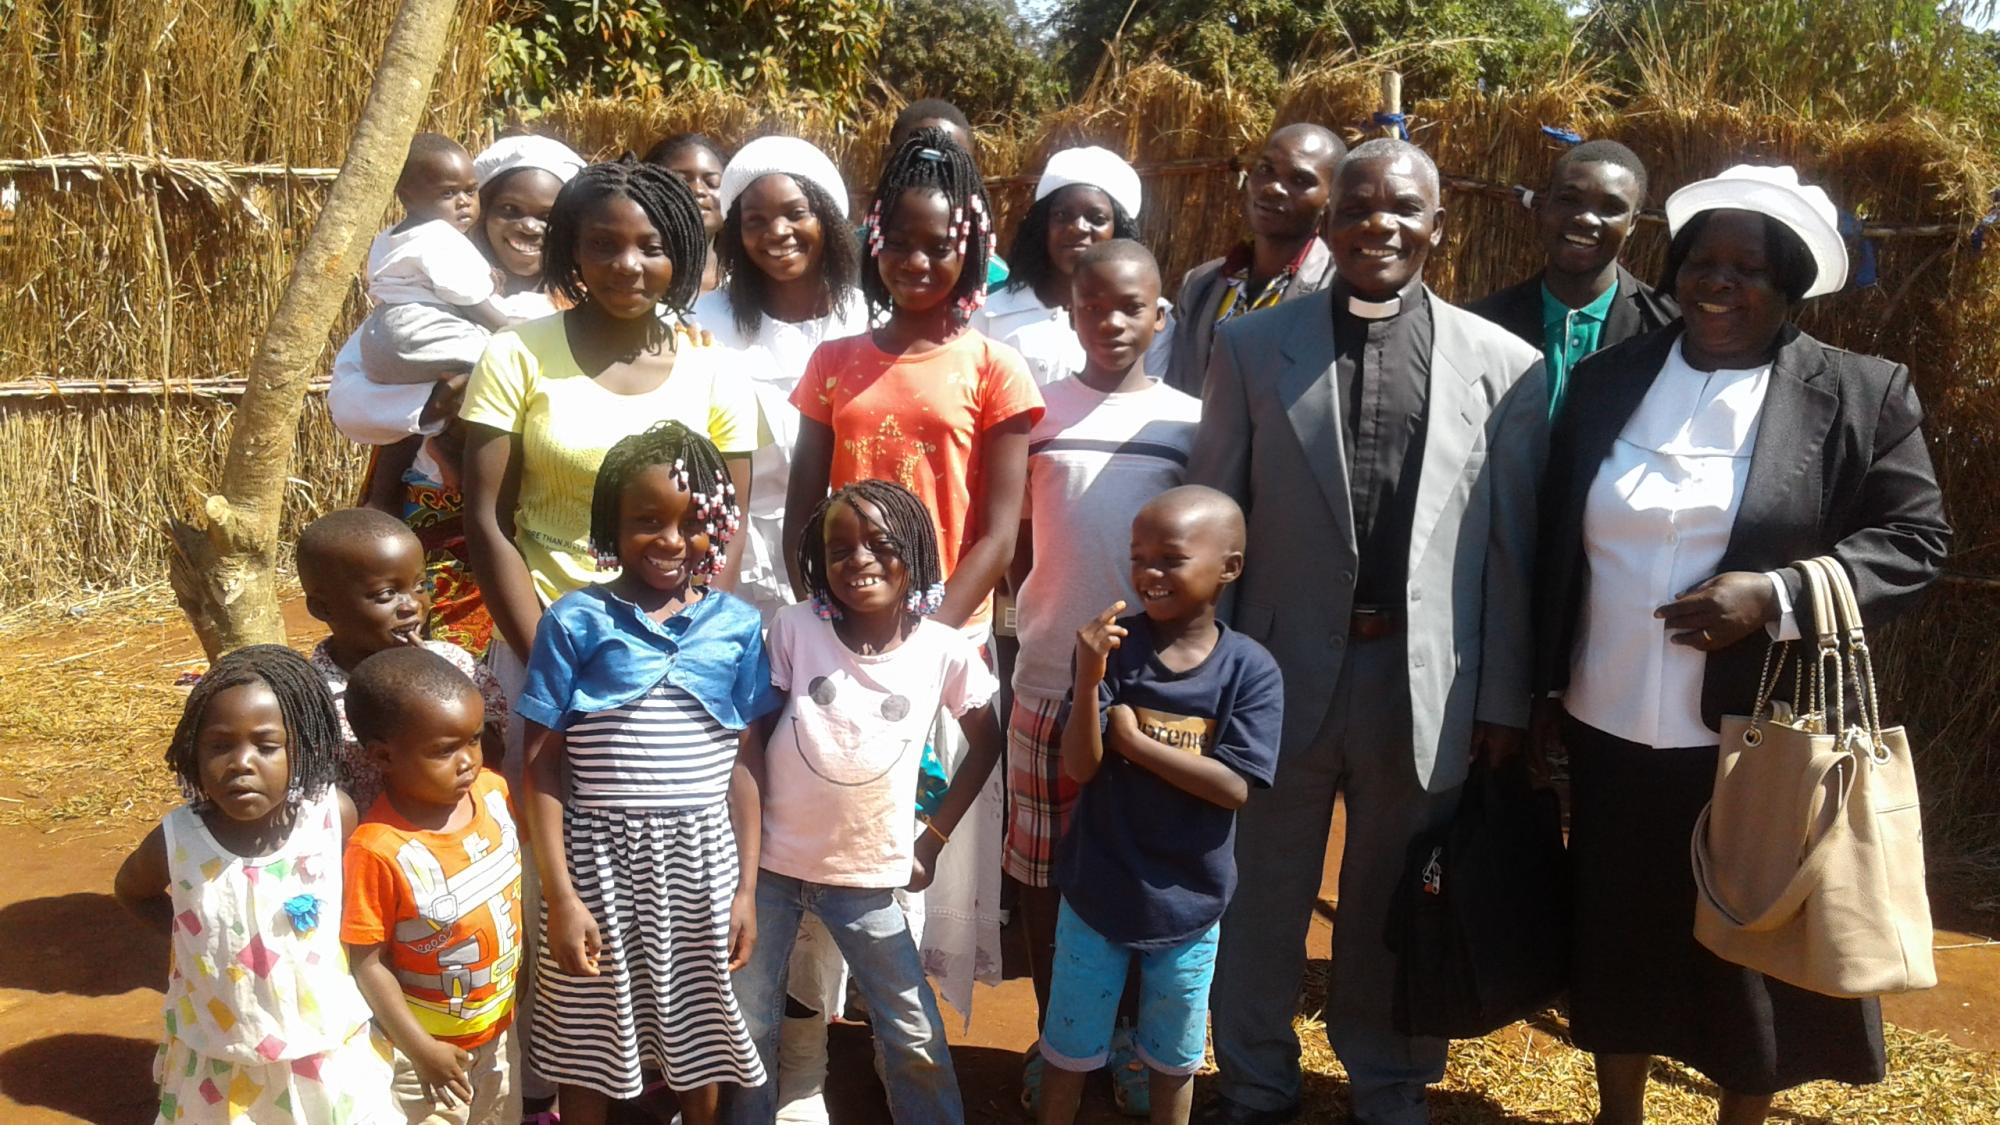 Laston Bissani, his wife Carlotta, and their family. Photo: courtesy of Laston Bissani.